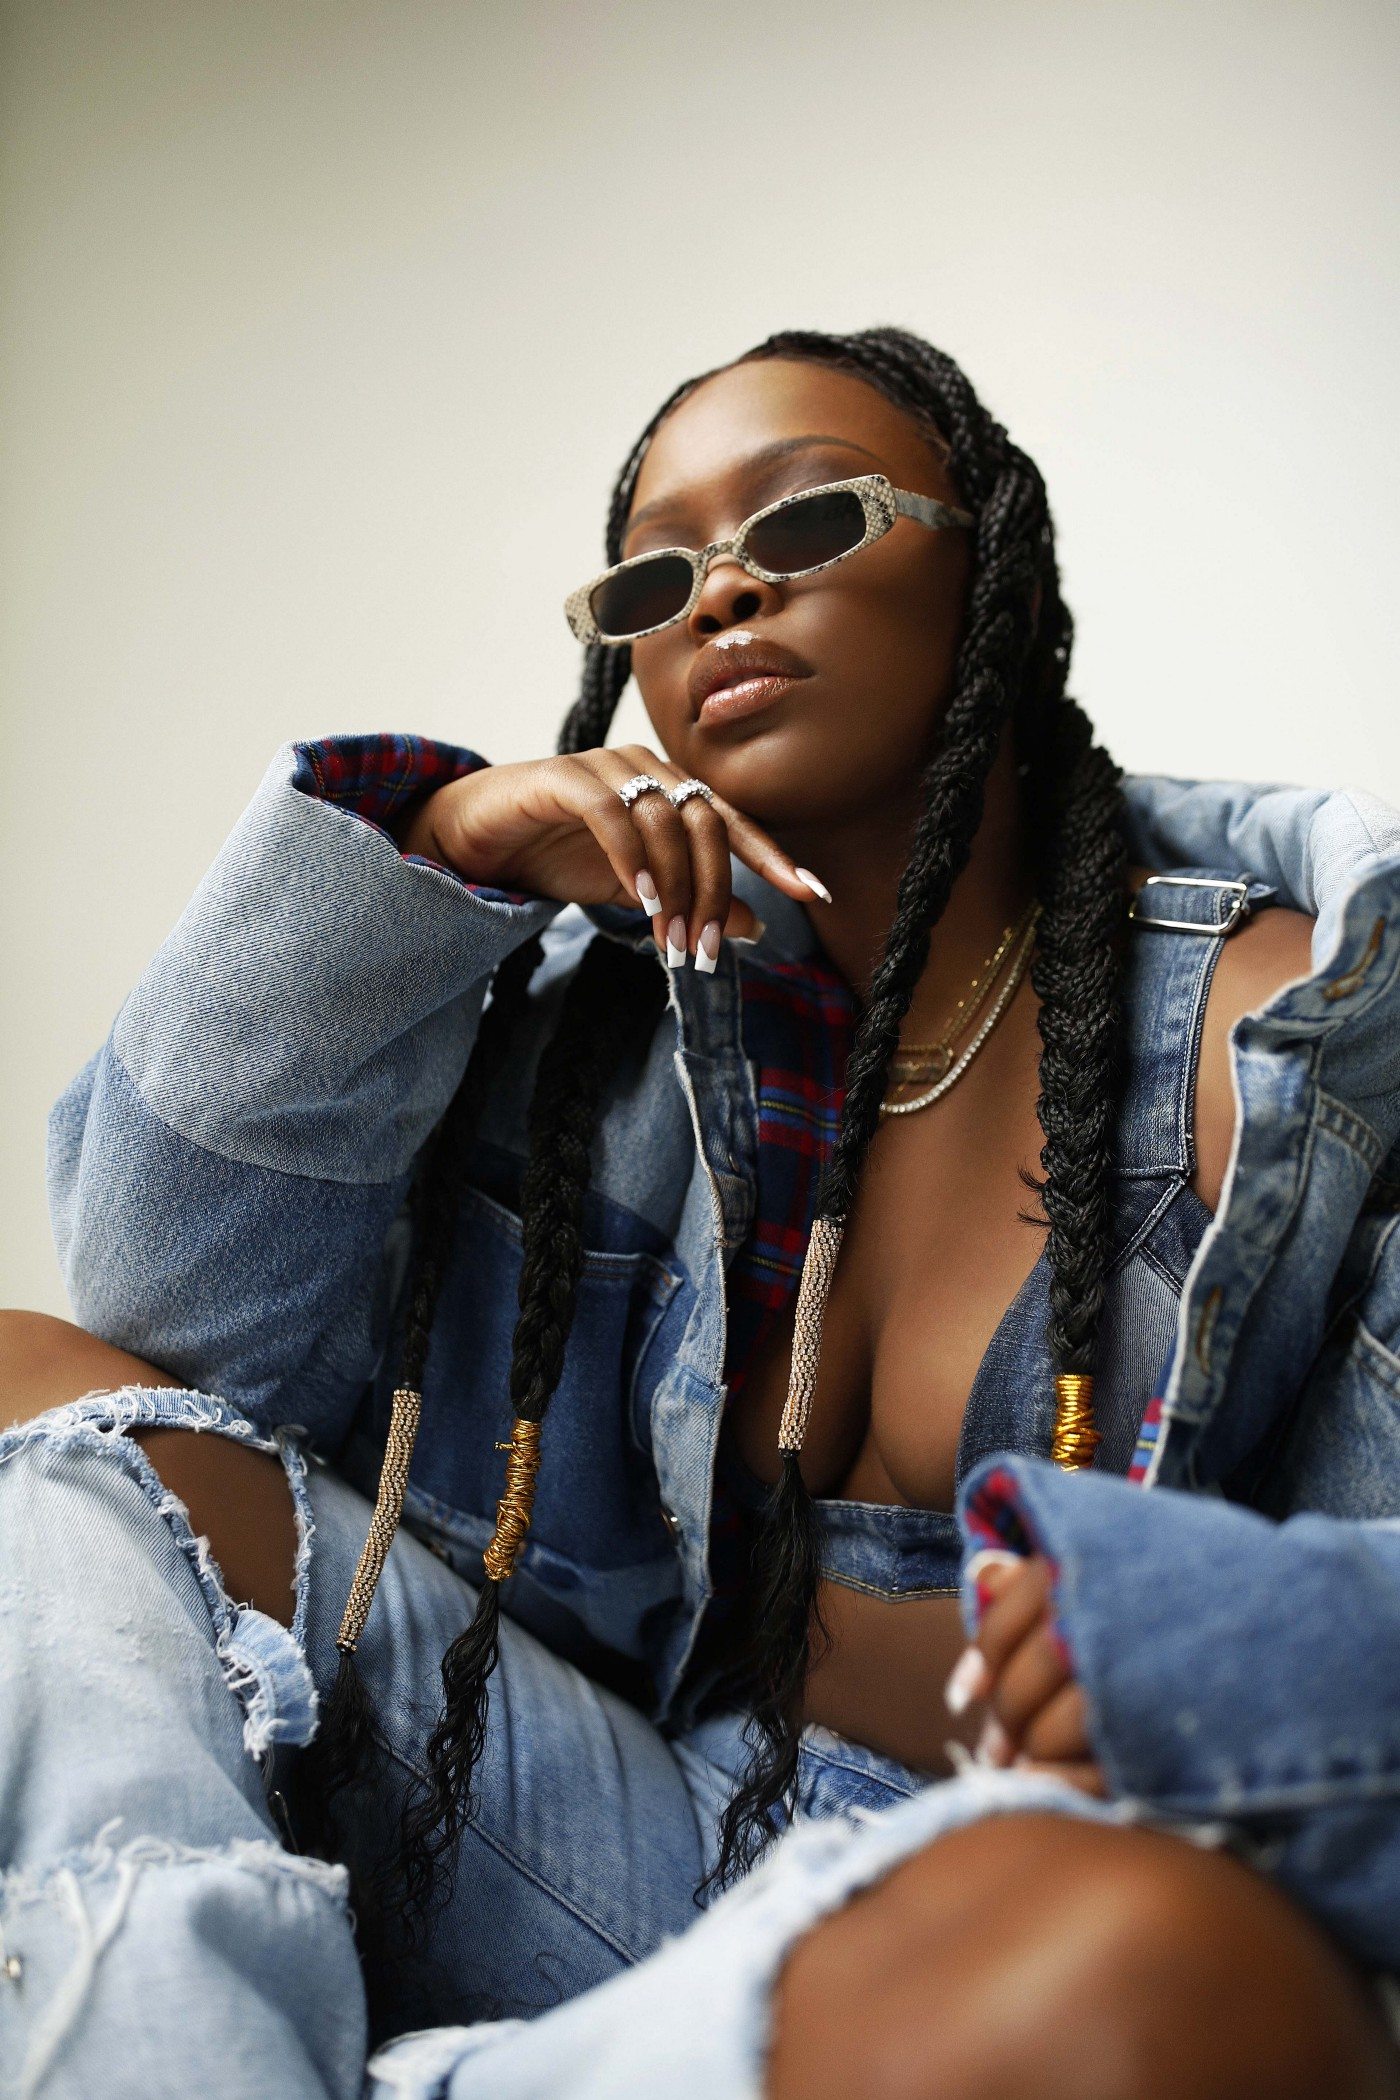 Stylish photo of Charm La'Donna wearing sunglasses and a cool denim outfit, taken from a lower angle.